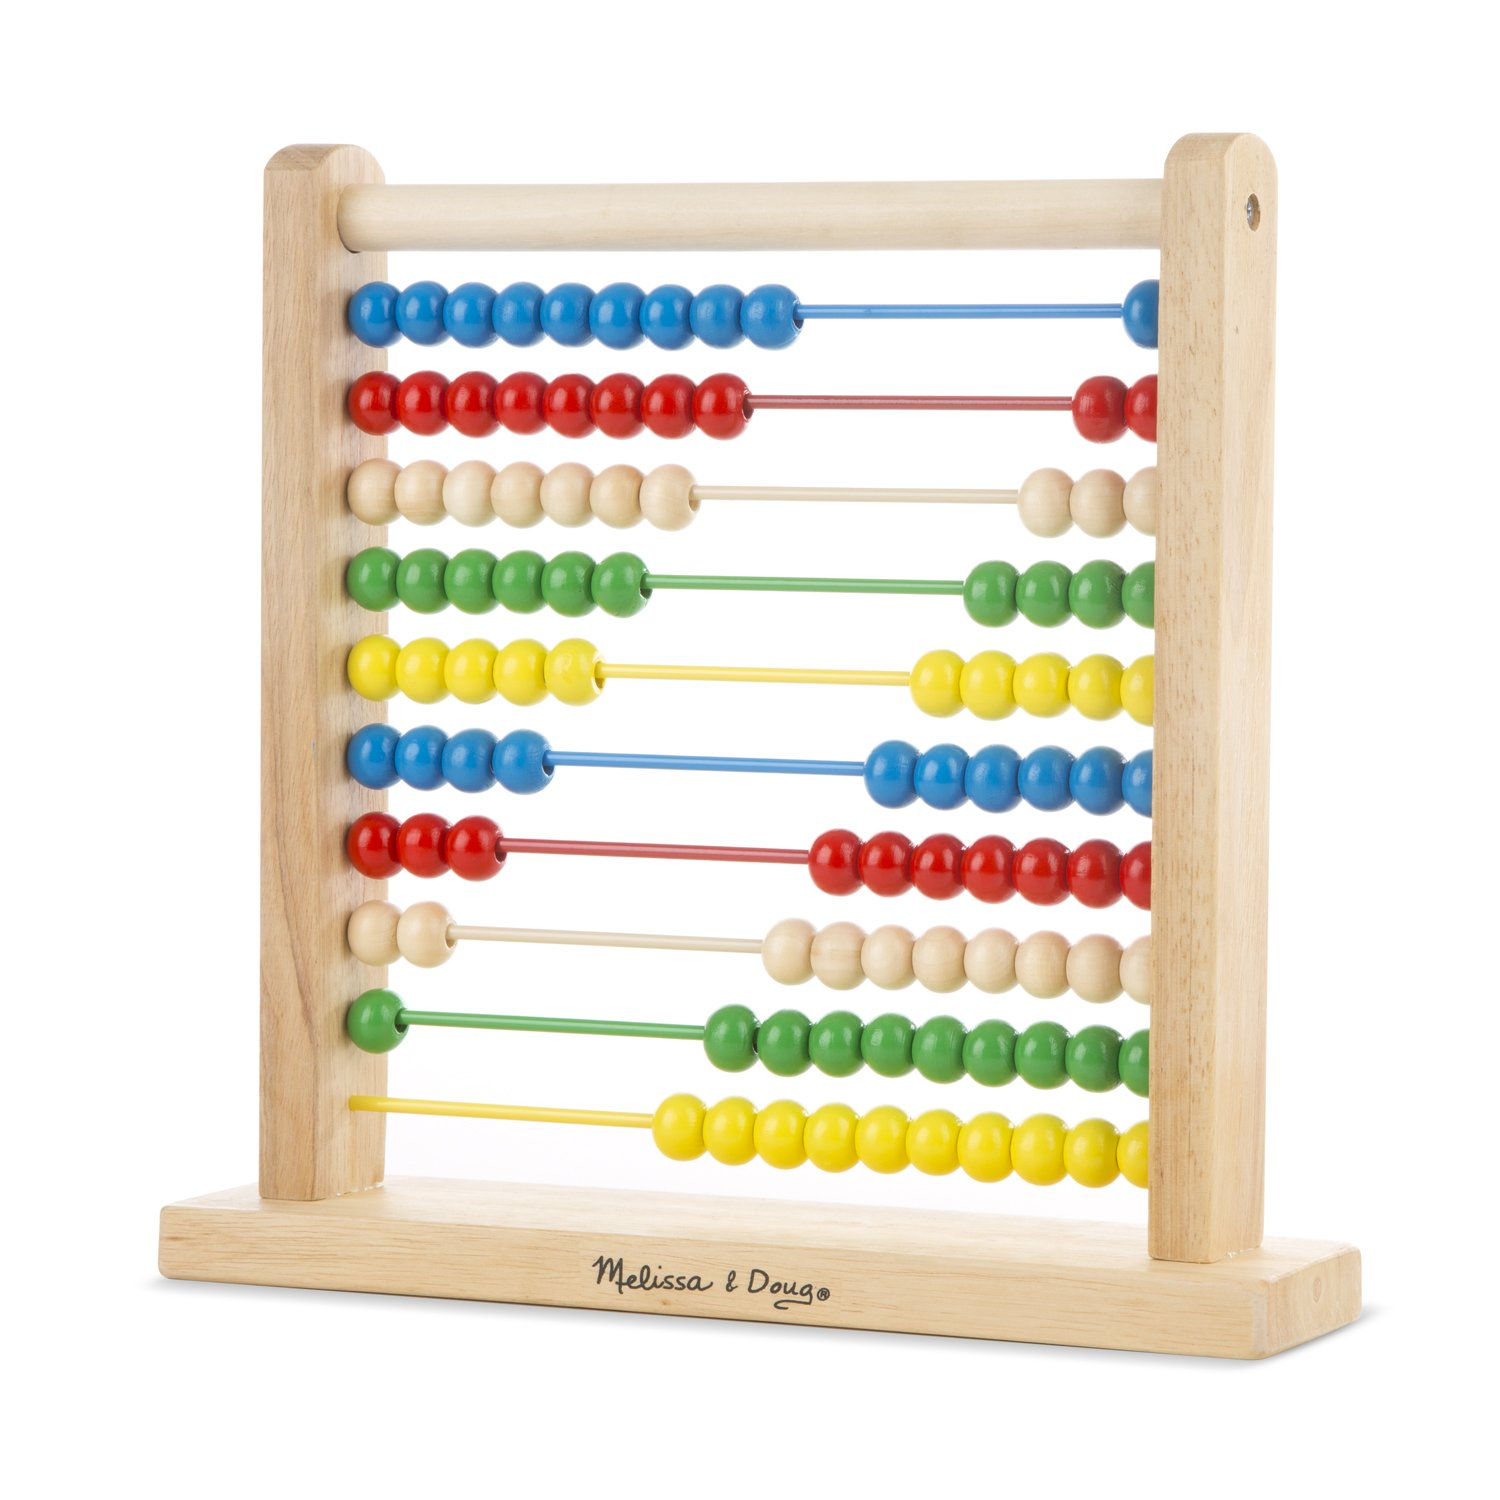 Melissa Doug Abacus Classic Wooden Educational Counting Toy With 100 Beads